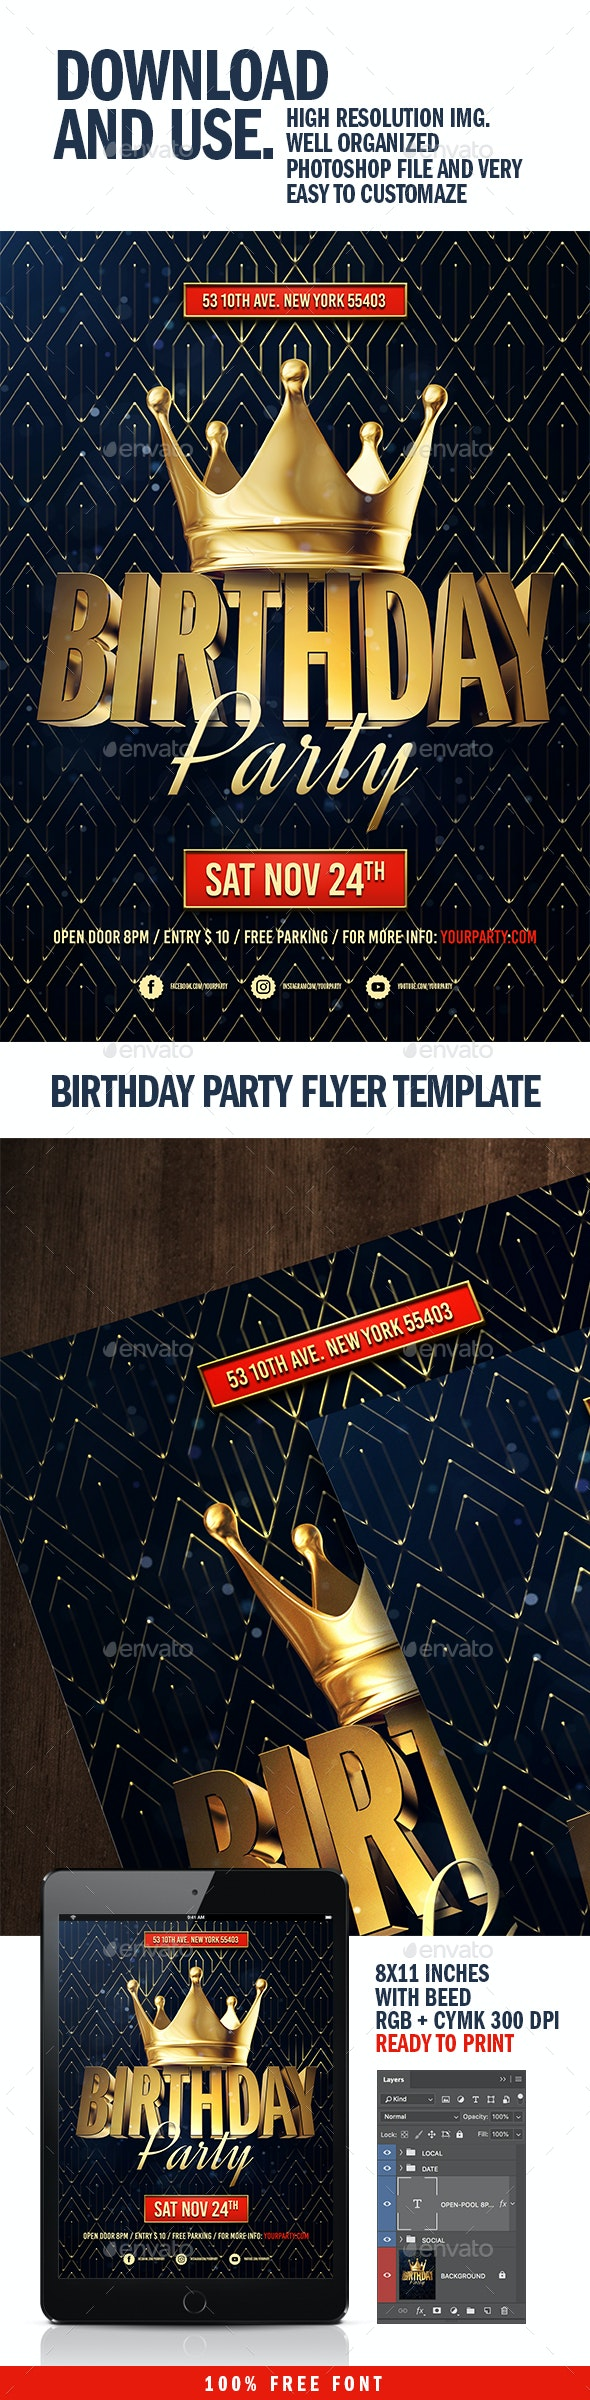 Birthday Party Flyer Template - Flyers Print Templates